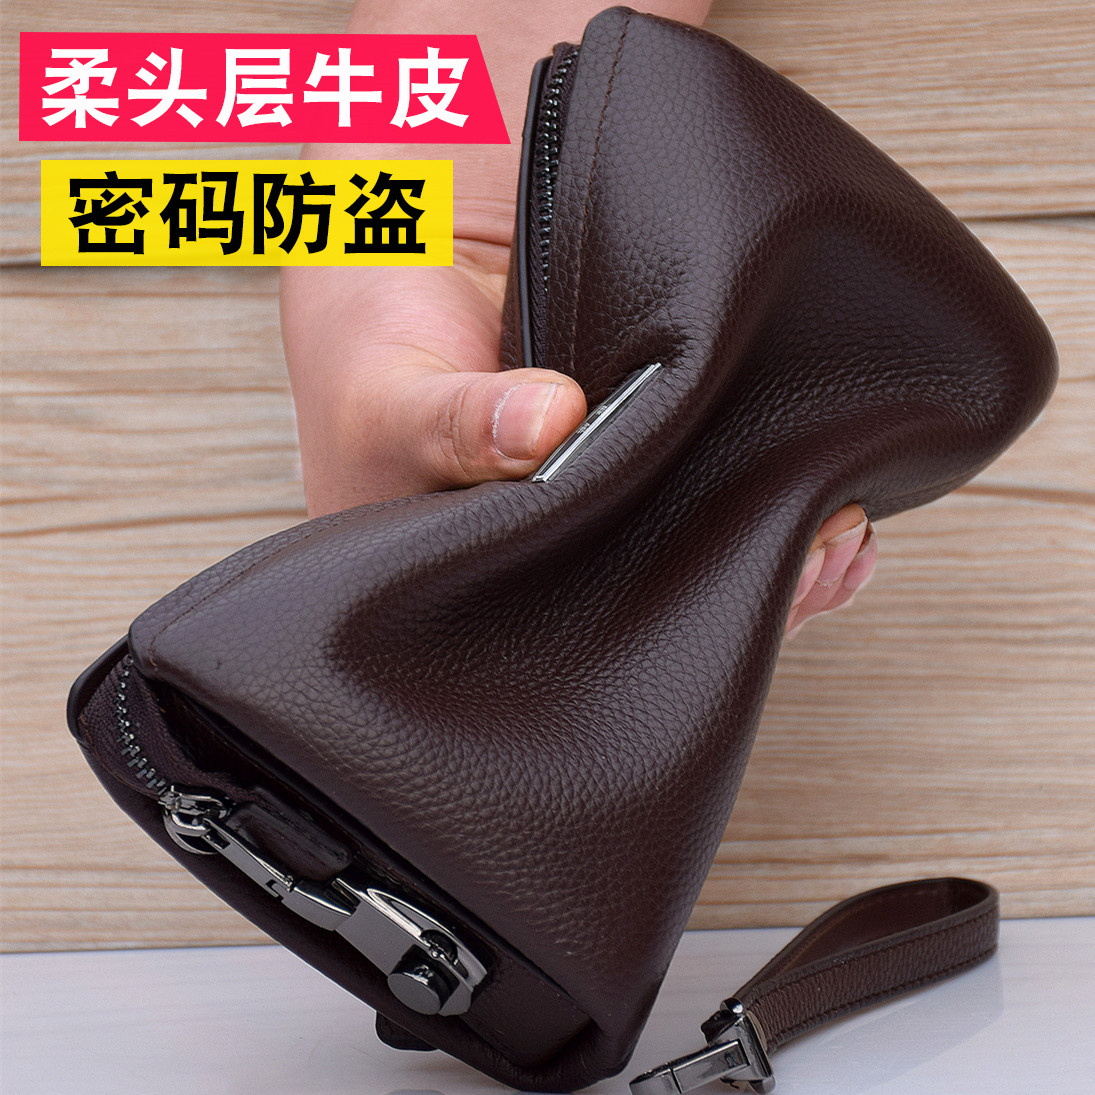 2020 new leather hand wallet mens handbag soft leather large capacity business hand bag with code lock